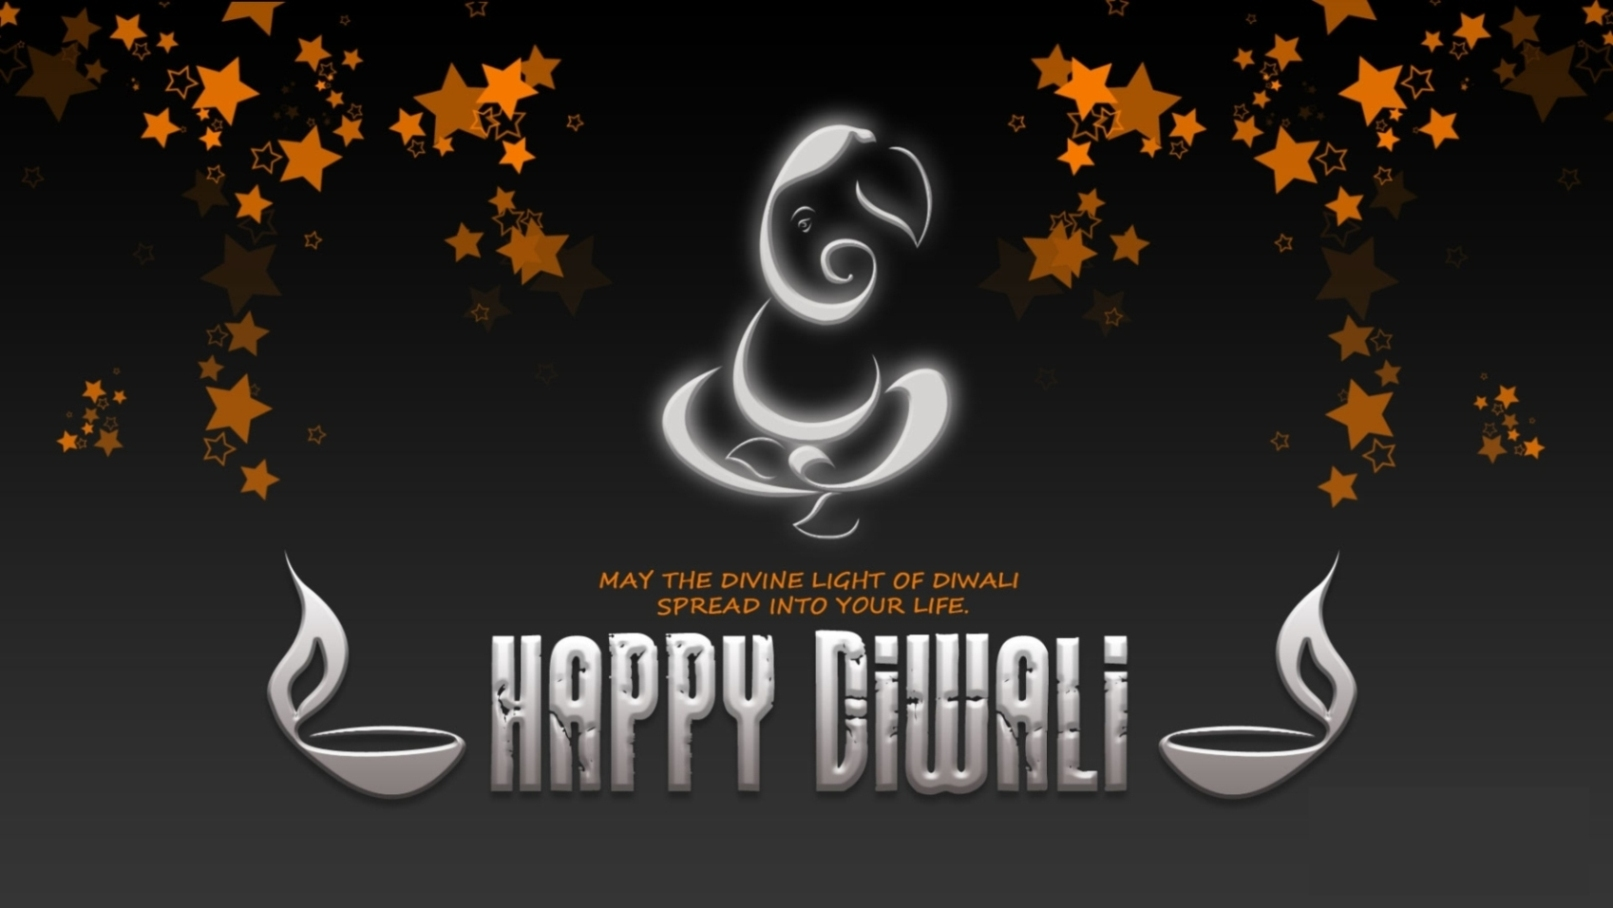 happy deepavali images photos and special greetings wallpaper download